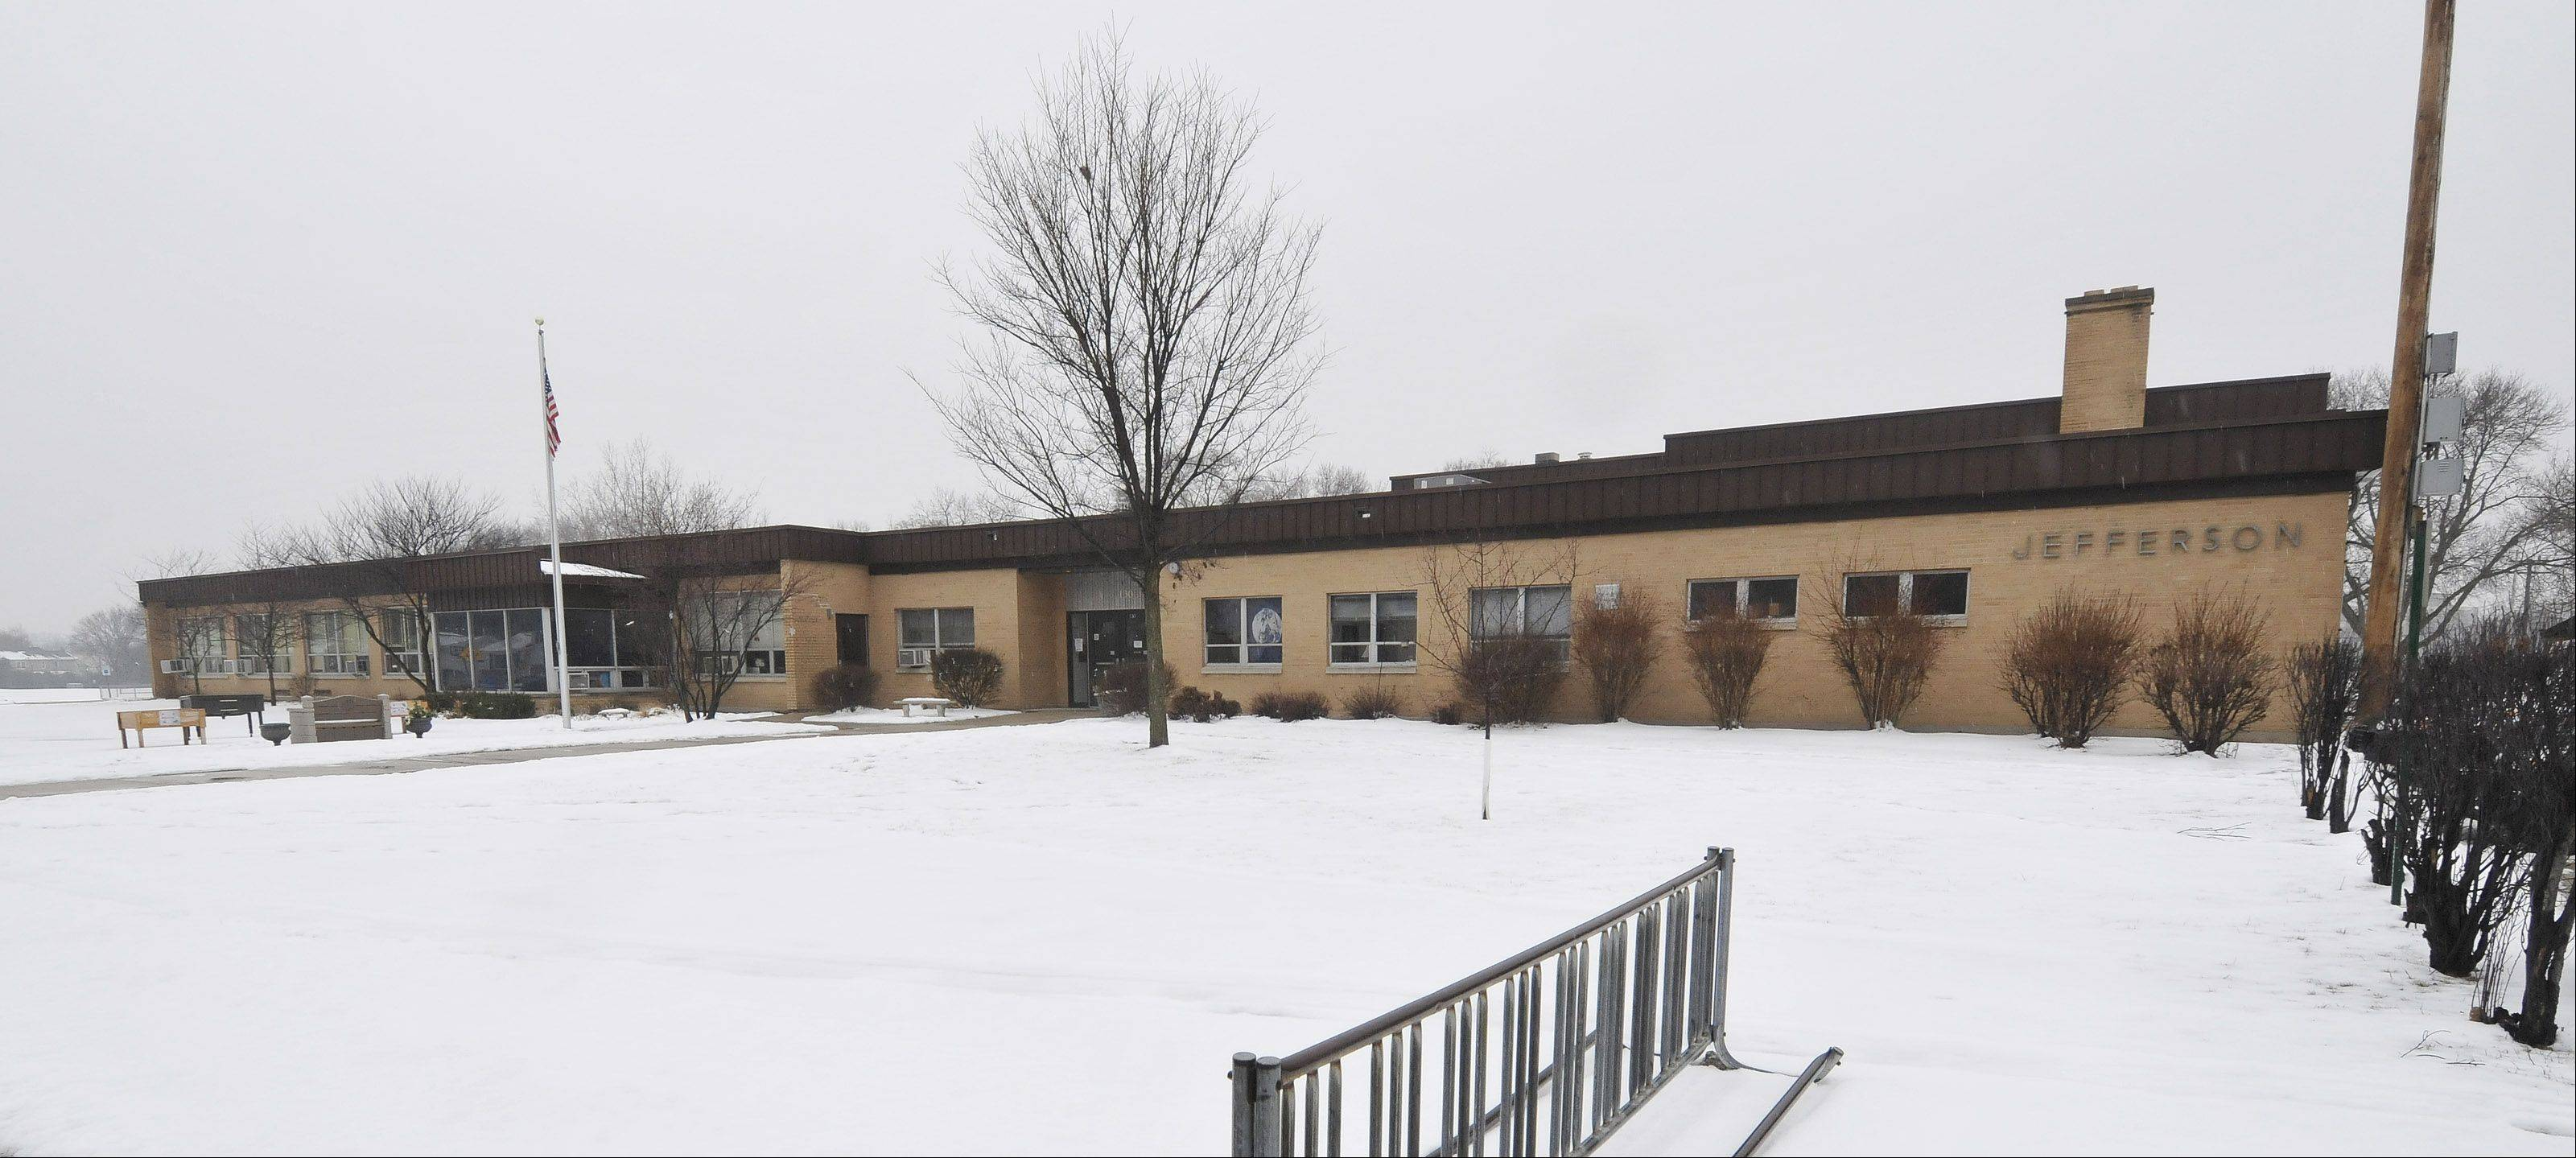 Voters who go to the polls April 9 in Wheaton Warrenville Unit District 200 will be asked to decider the fate of the Jefferson Early Childhood Center.